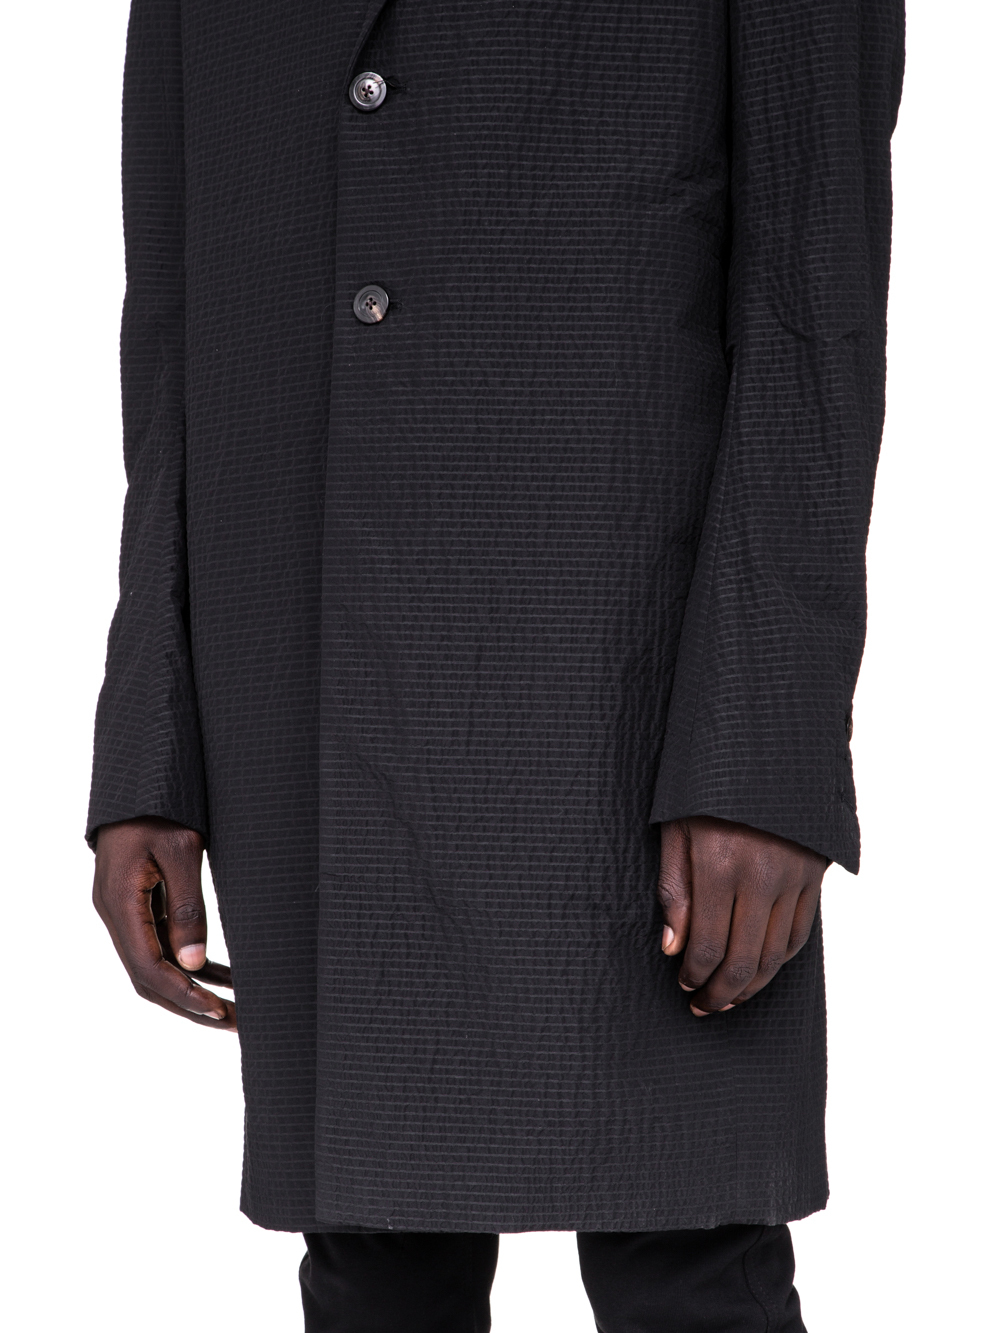 RICK OWENS SS19 BABEL MOREAU PEACOAT IN BLACK